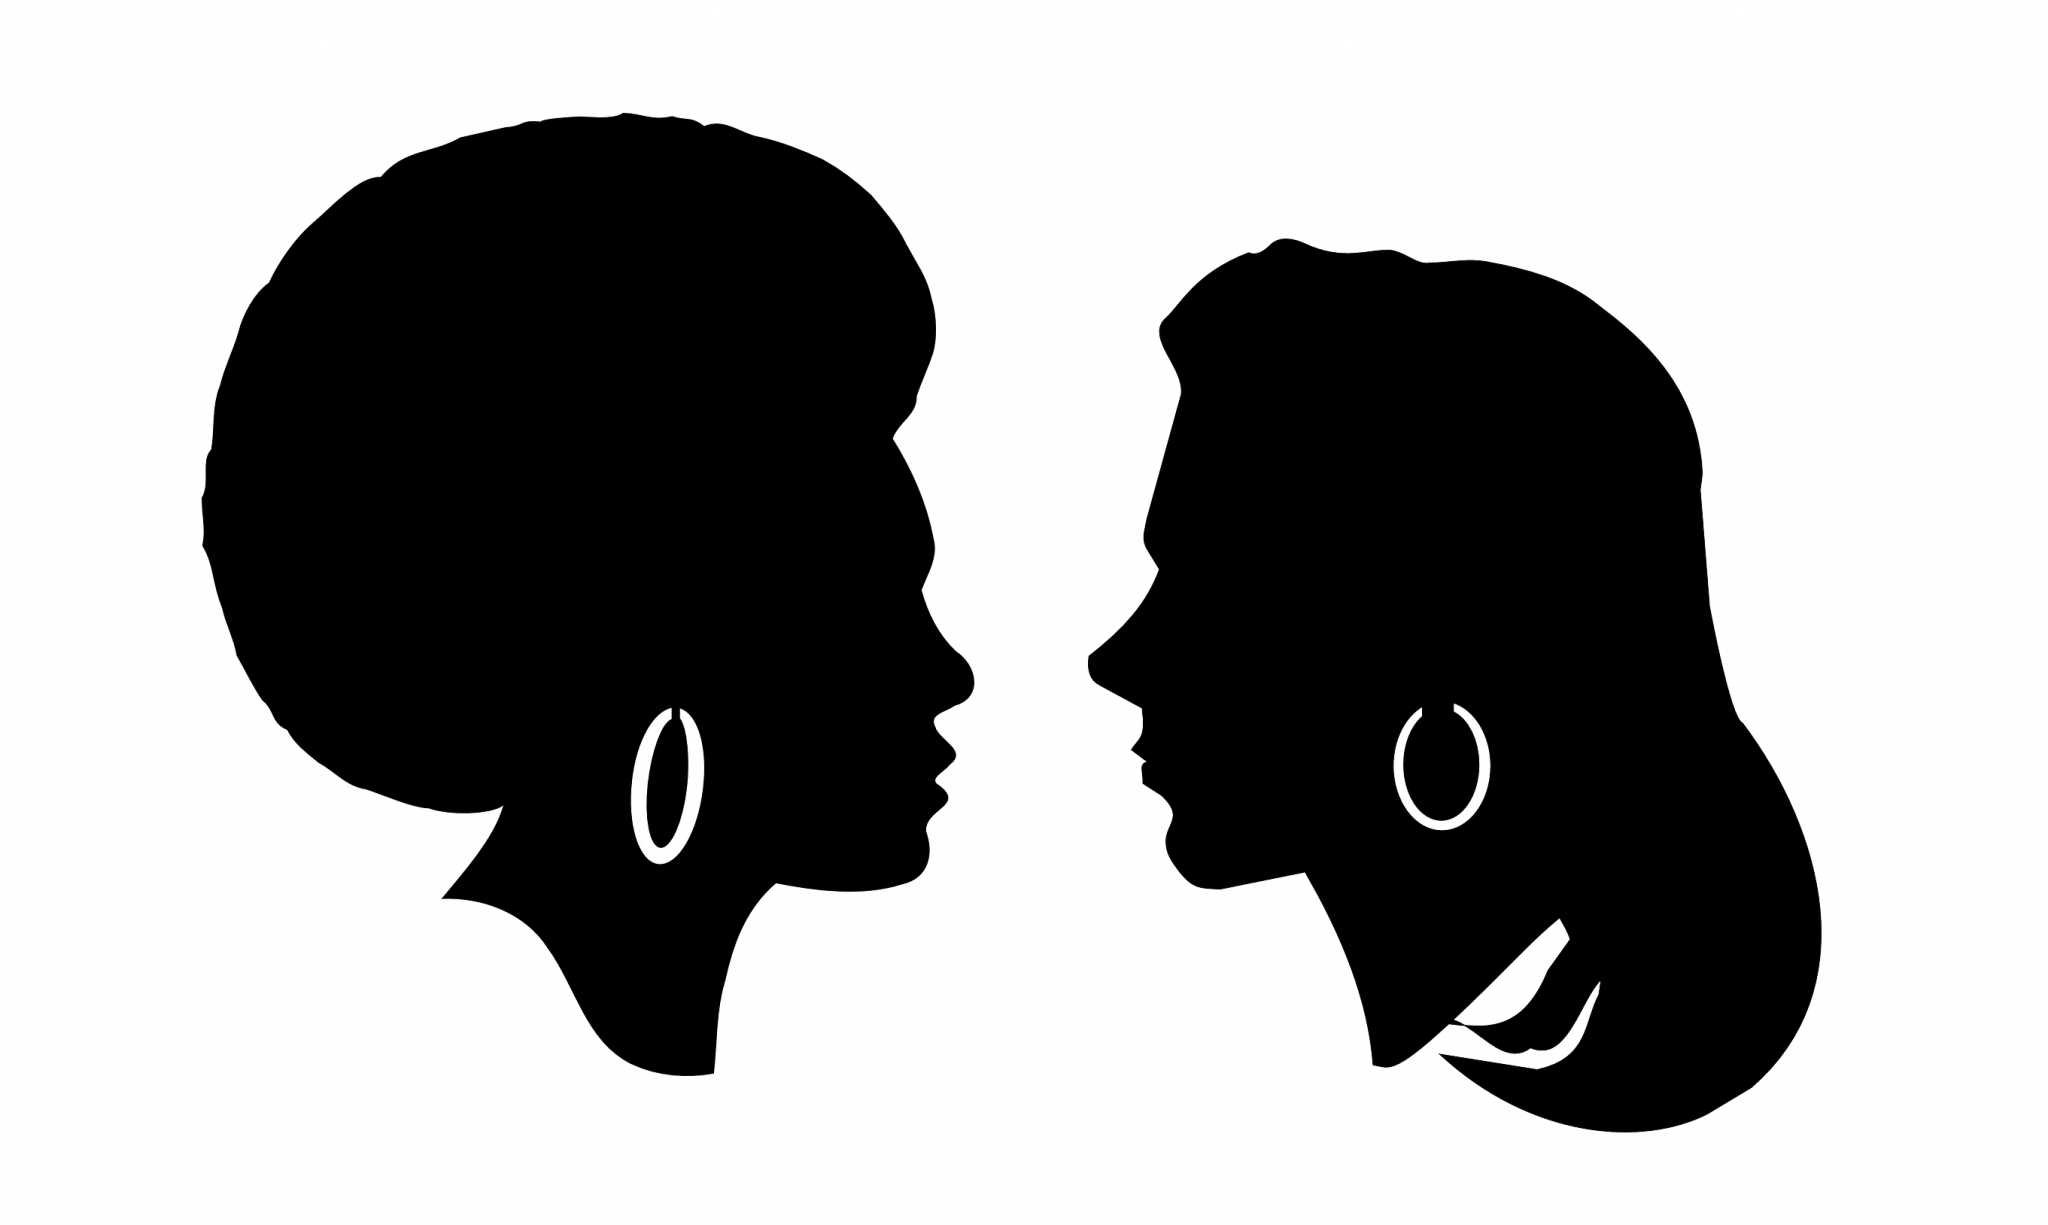 Women s march black and white clipart svg transparent stock Black women can\'t relate to SF Women\'s March – Golden Gate ... svg transparent stock